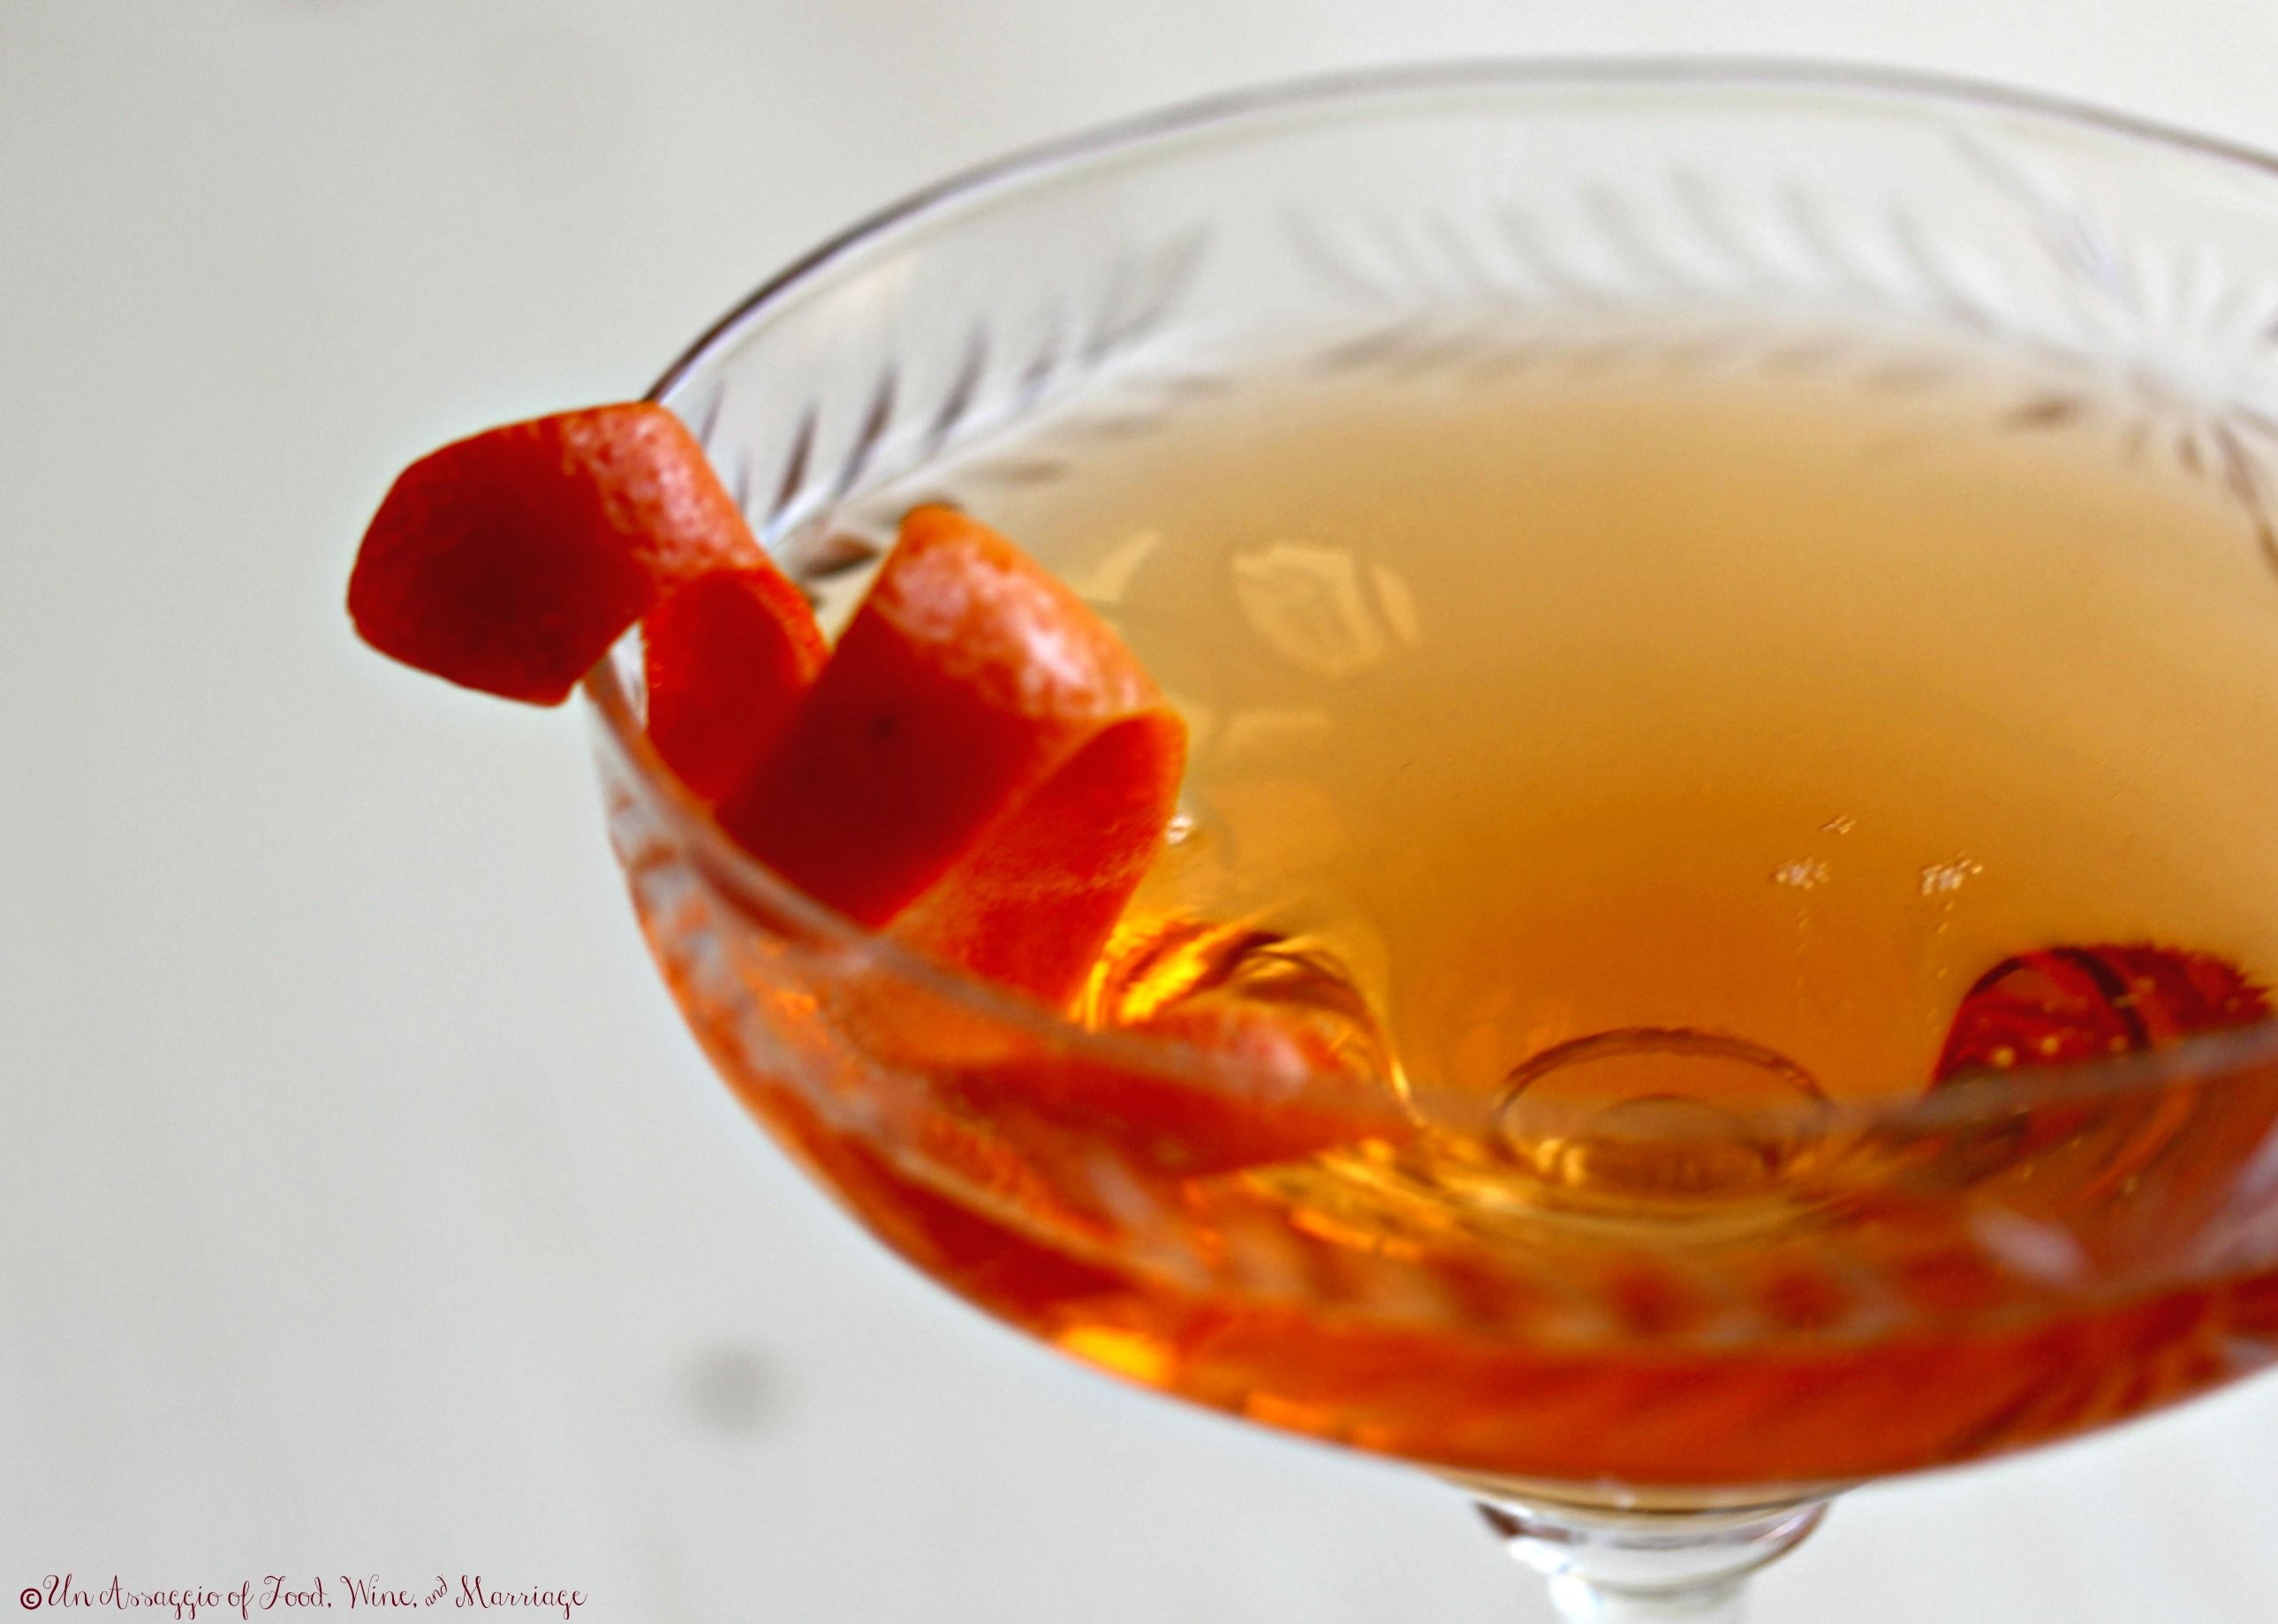 The Seelbach a seductive bitter bubbly cocktail. It is the signature cocktail of the Seelbach Hotel in Kentucky first mixed in 1917.